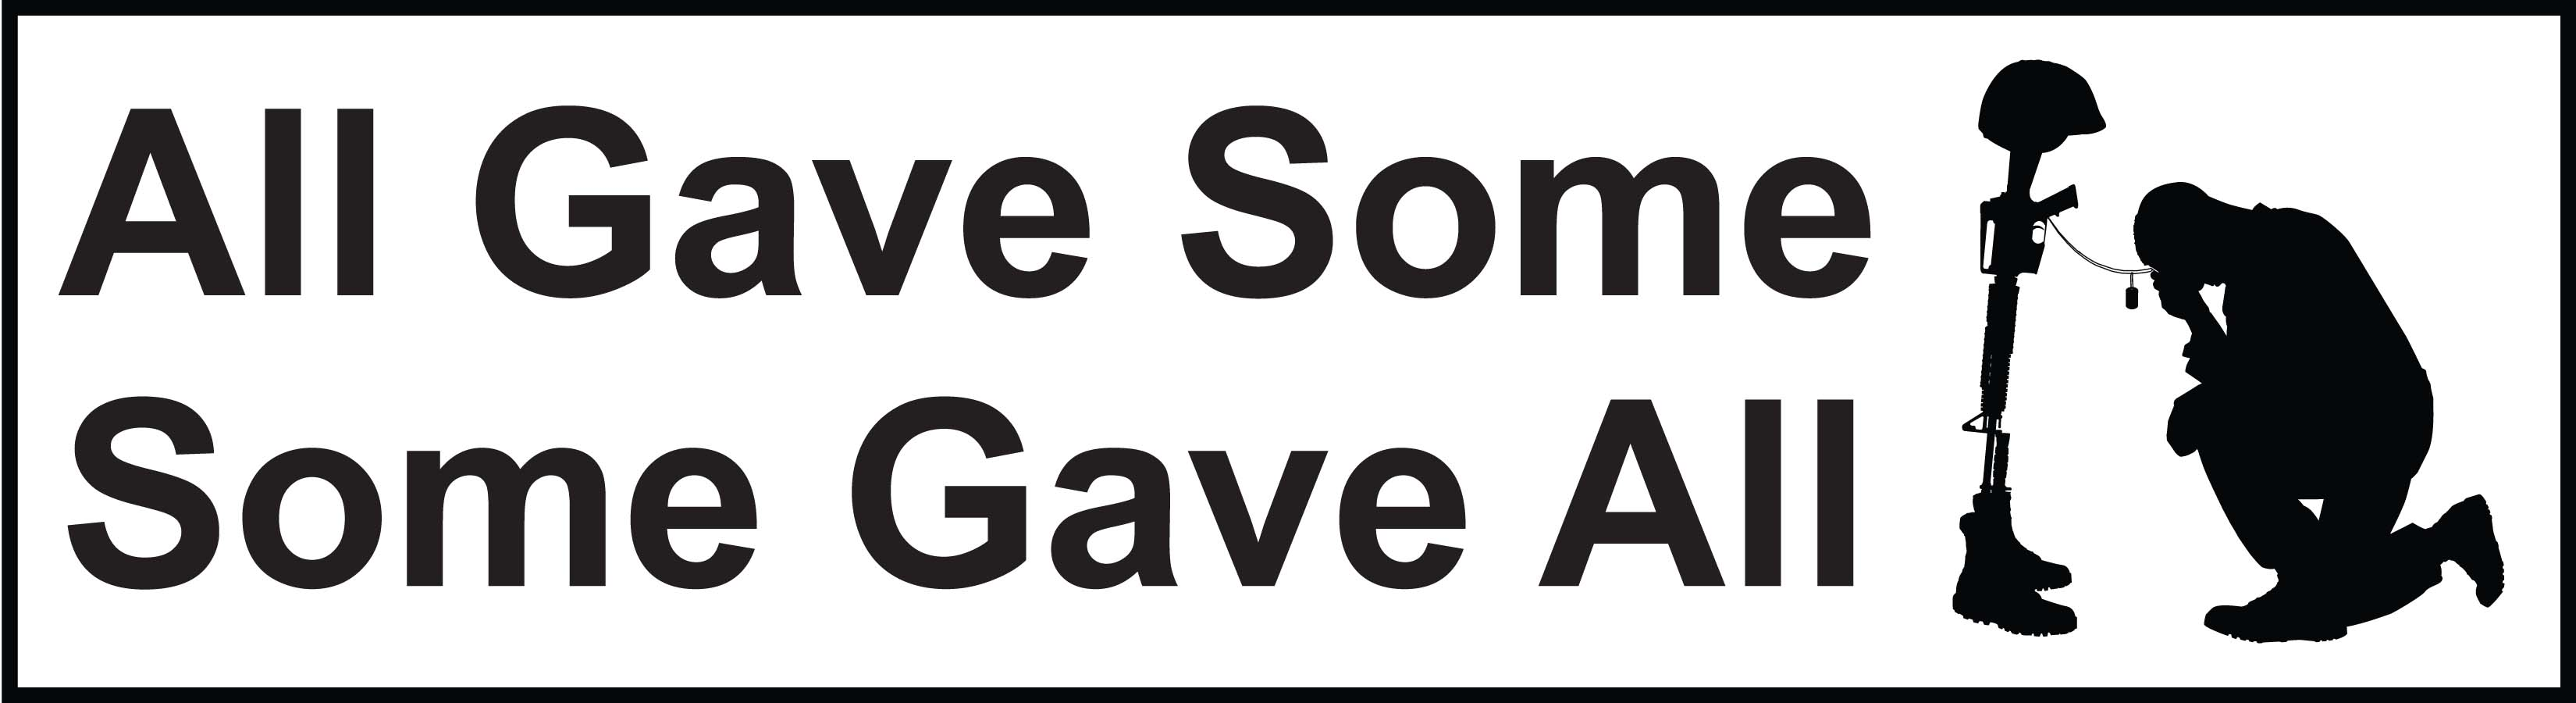 All Gave Some - Some Gave All Bumper Sticker